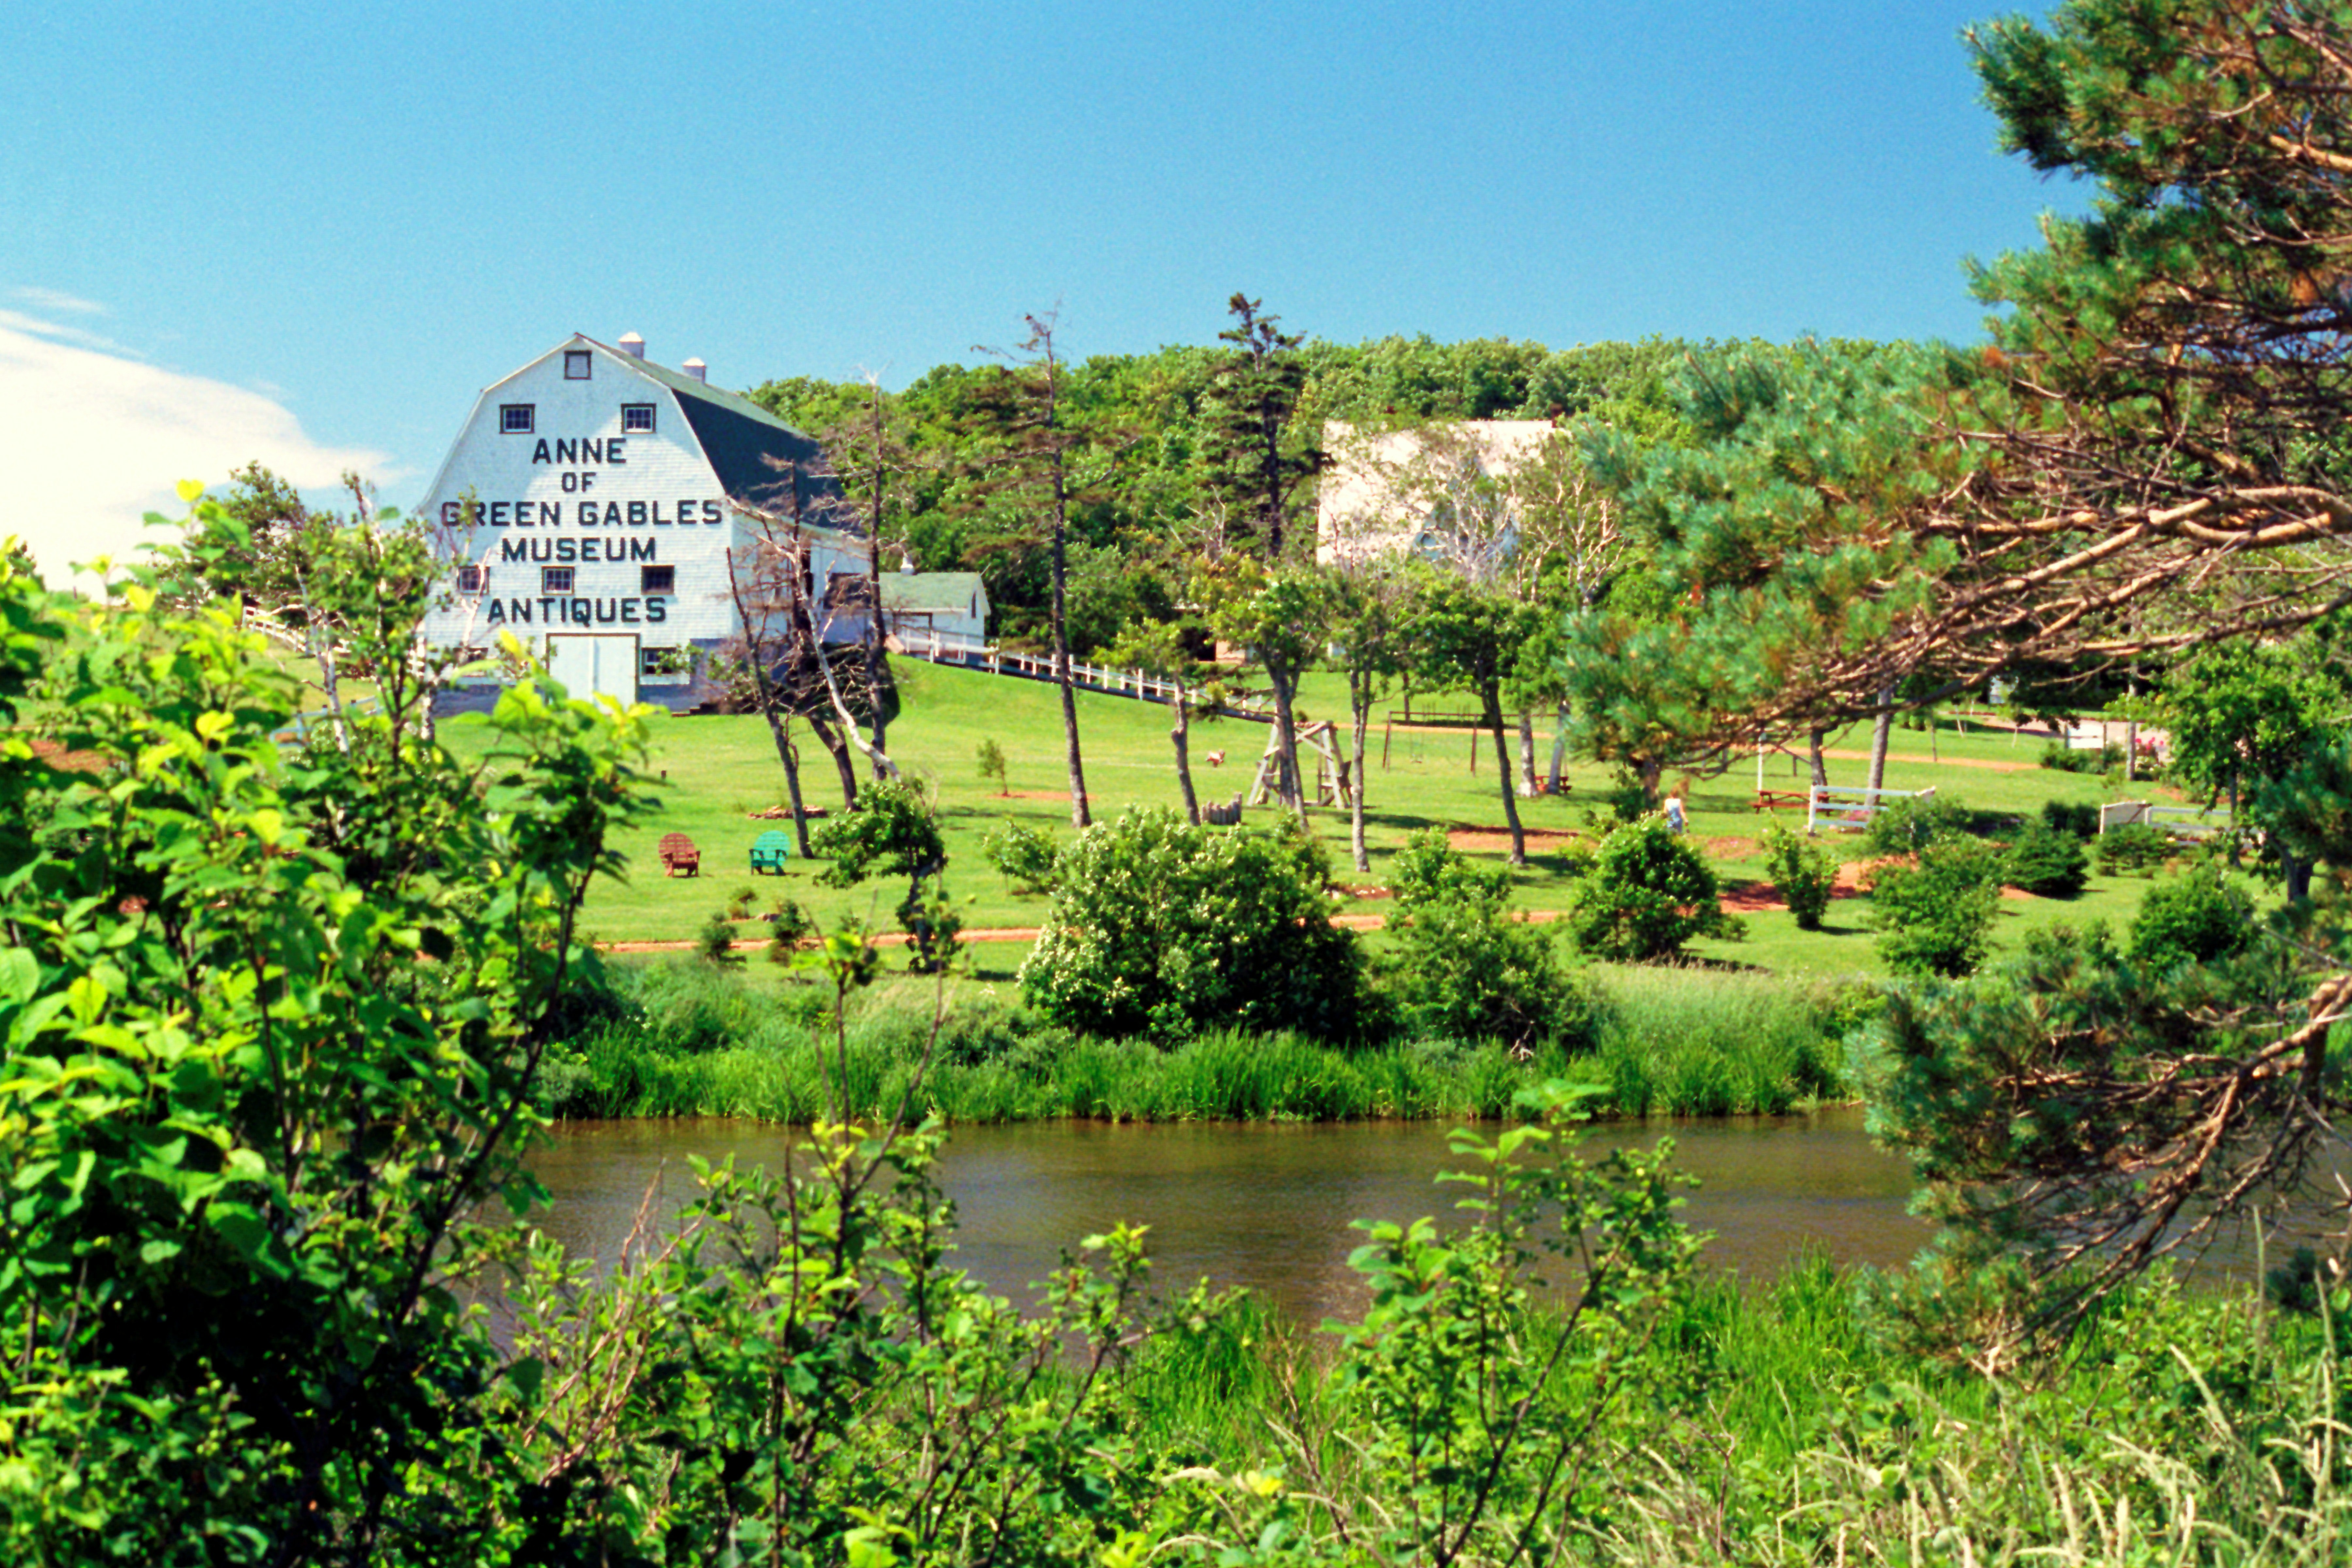 Park Corner, Prince Edward Island, Canada, Scenic Spots That Inspired Renowned Novels And Films